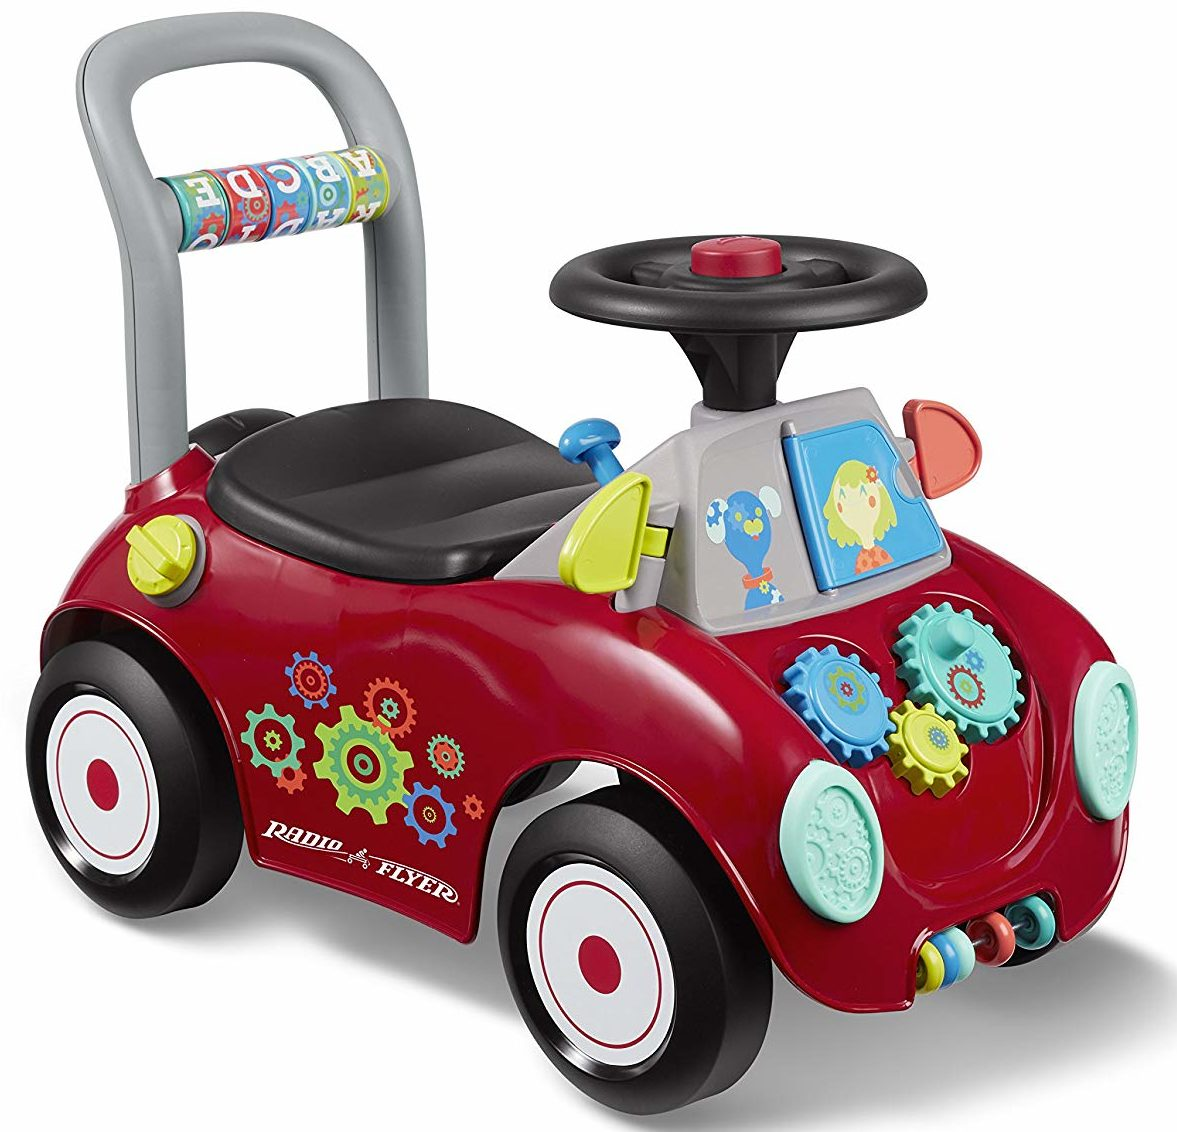 """Best Toy for a Year Old Radio Flyer """"width ="""" 400 """" height = """"385"""" srcset = """"https://www.top5.com/wp-content/uploads/2013/06/best-toys-for-aone-year-old-radio-flyer-e1557253755520.jpg 1177w, https : //www.top5.com/wp-content/uploads/2013/06/best-toys-for-aone-old-radio-flyer-e1557253755520-300x289.jpg 300w, https: //www.top5 .com / wp-content / uploads / 2013/06 / best-toys-for-a-one-year-old-radio-flyer-e1557253755520-768x739.jpg 768w, https://www.top5.com/wp-content/uploads / 2013/06 / best-toys-for-a-one-year-old-radio-flyer-e1557253755520-1024x985.jpg 1024w """"Sizes ="""" (maximum width: 400px) 100vw, 400px"""